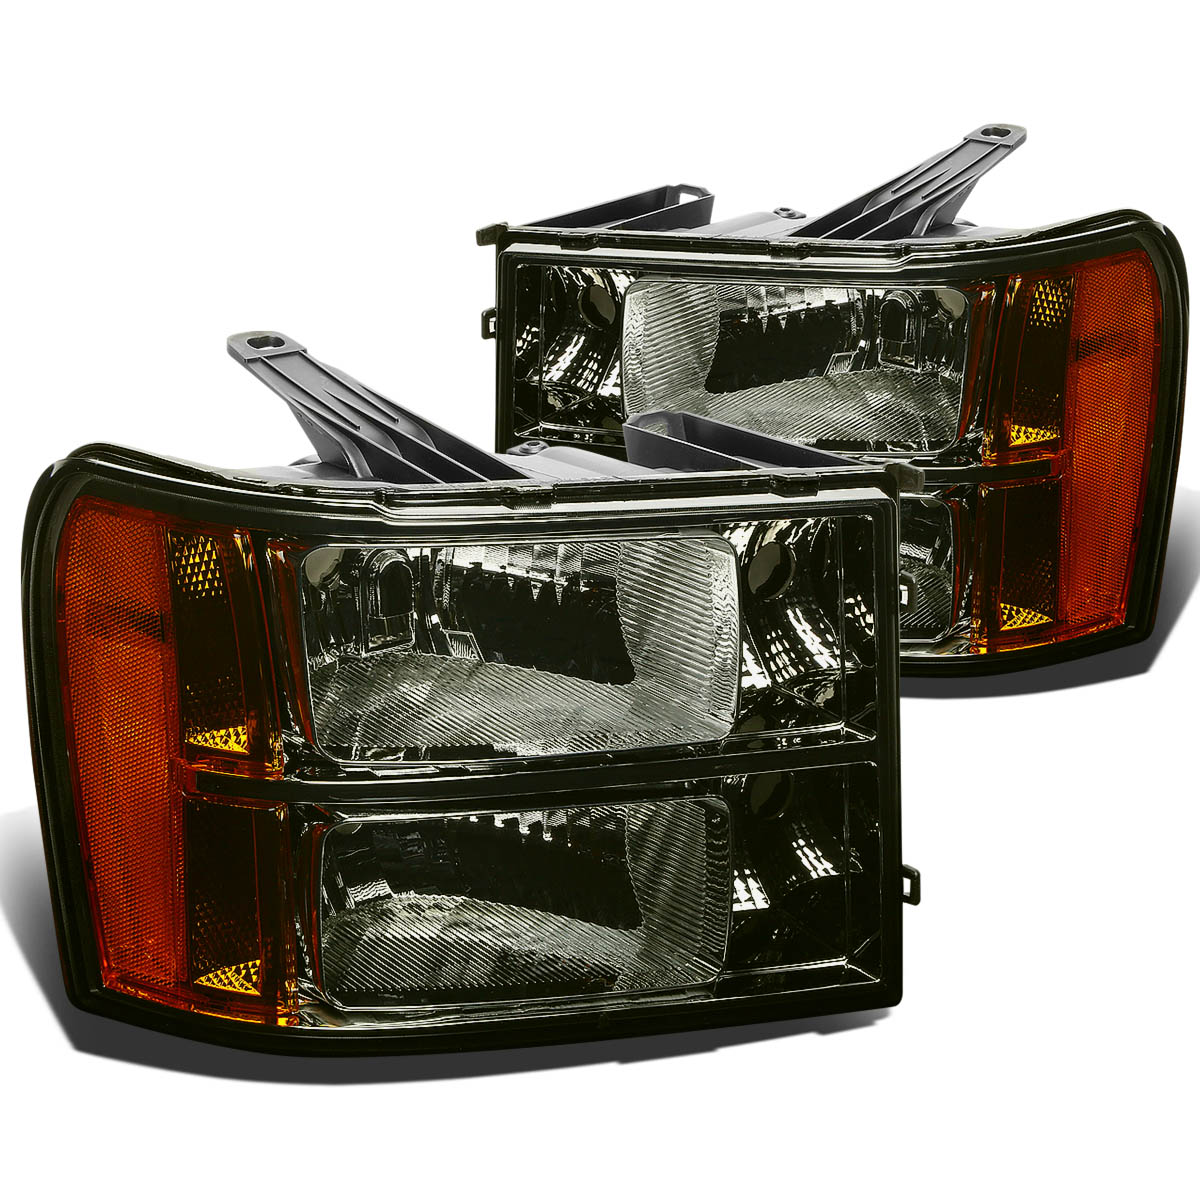 For 07-13 GMC Sierra GMT 900 Replacement Headlight Assembly Kit (Smoke Lens Amber Reflector) 08 09 10 11 12